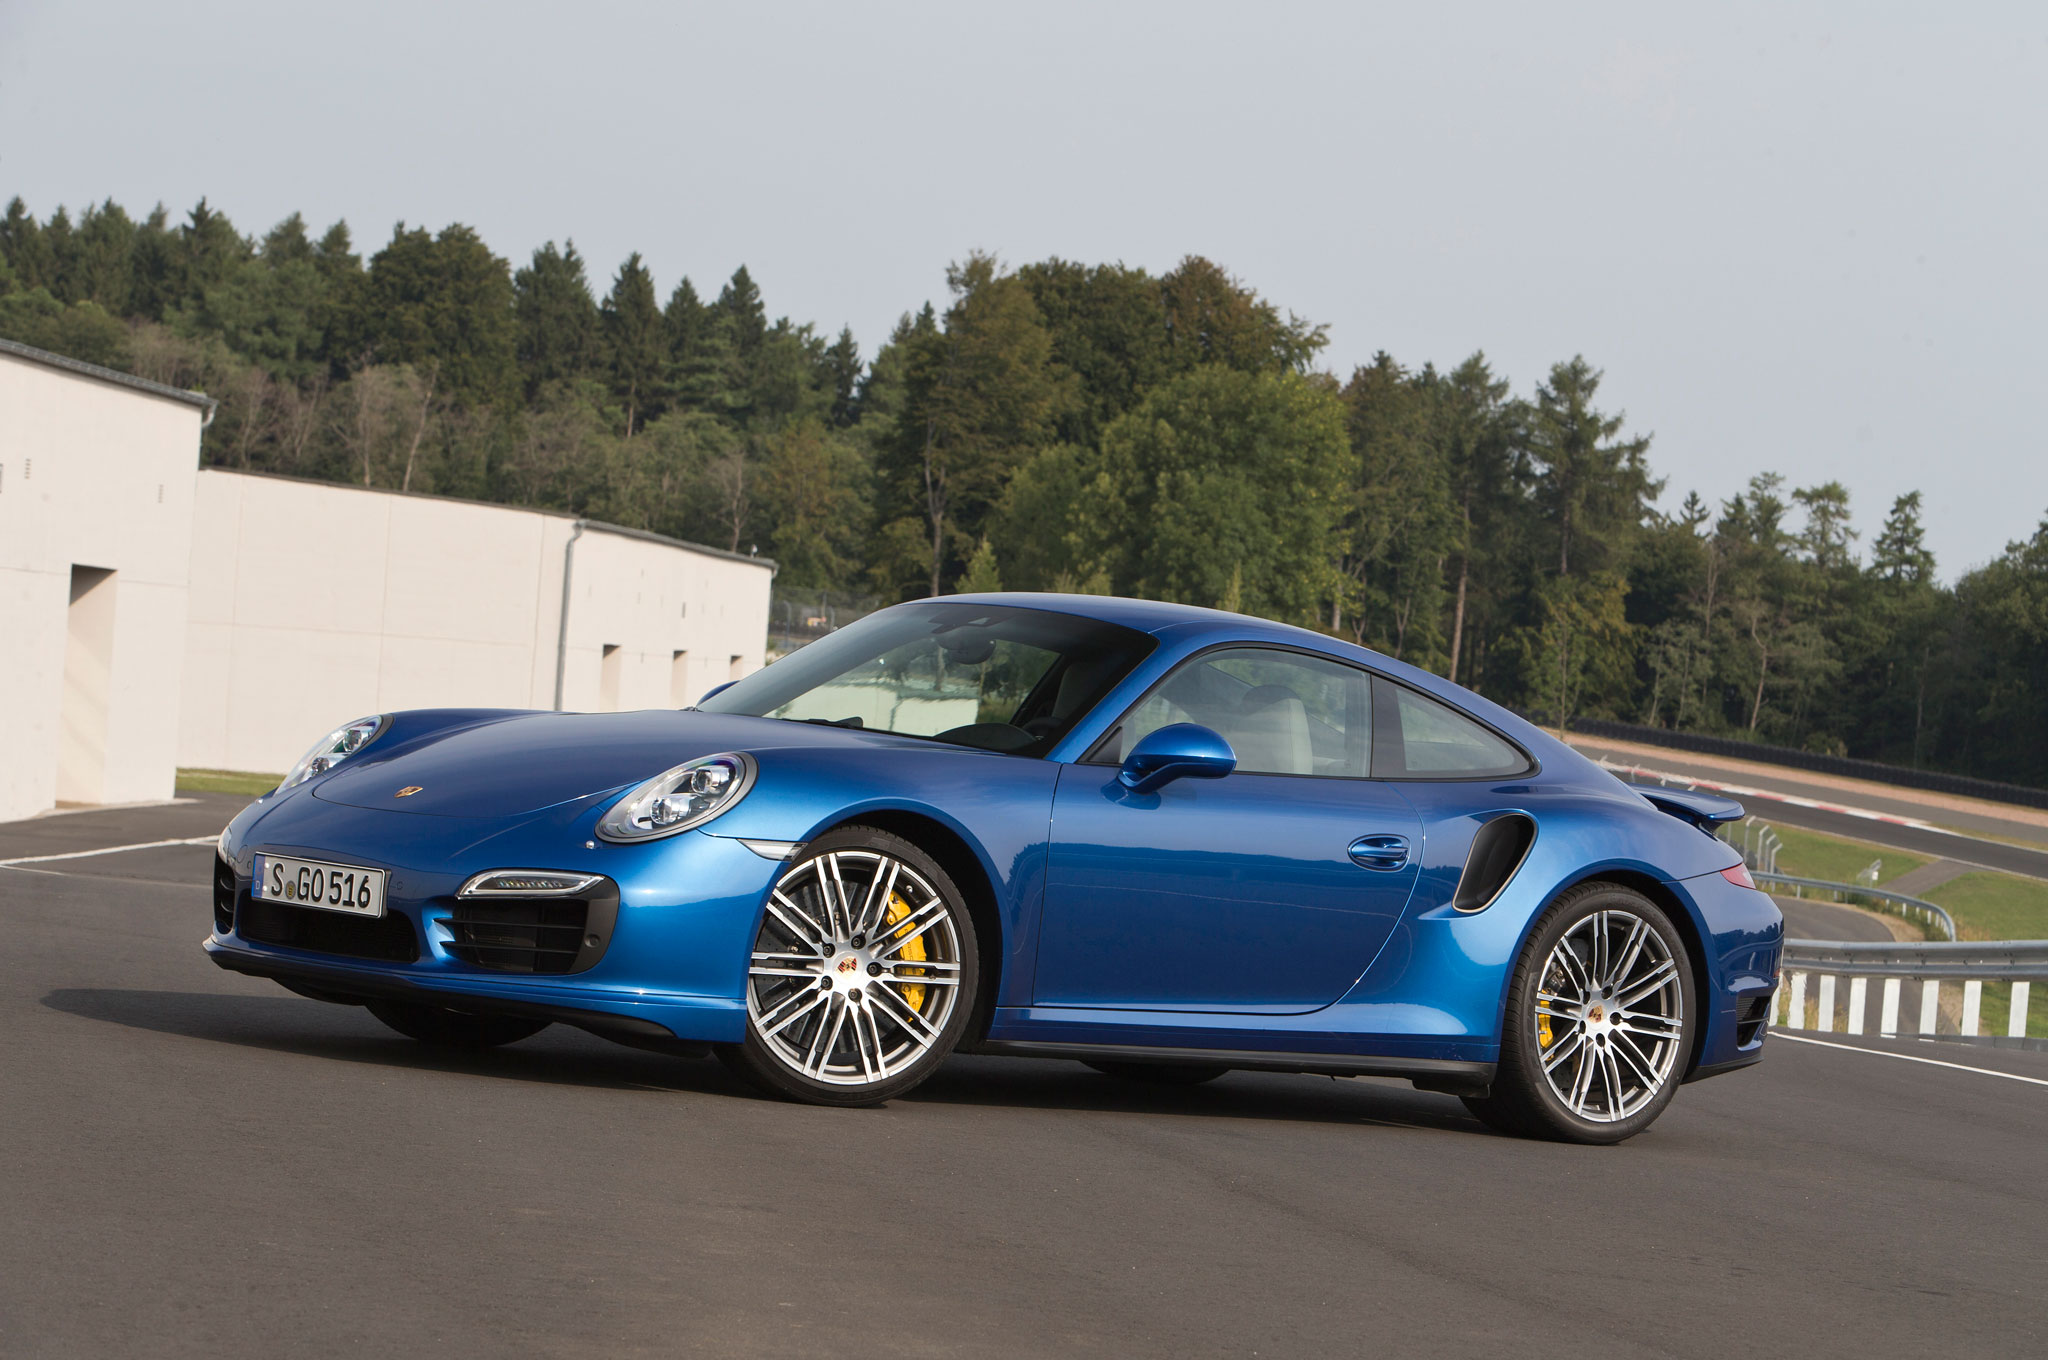 2014 porsche 911 turbo s front left side view 2 - 911 Porsche 2014 Price